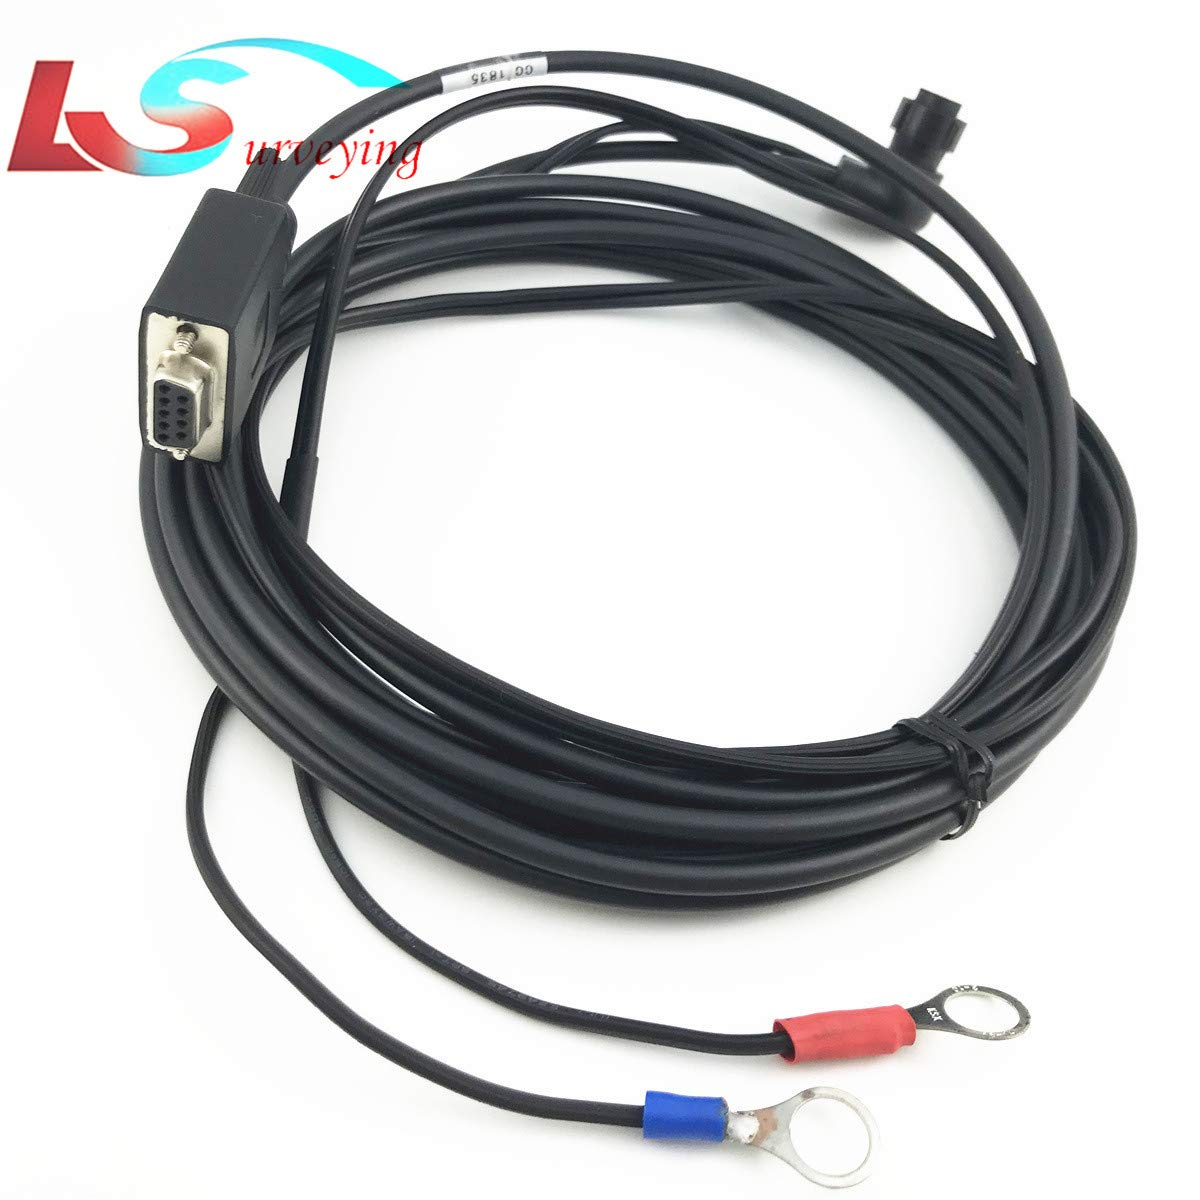 Trimble AG GPS Receiver Standard Power/Data Cable